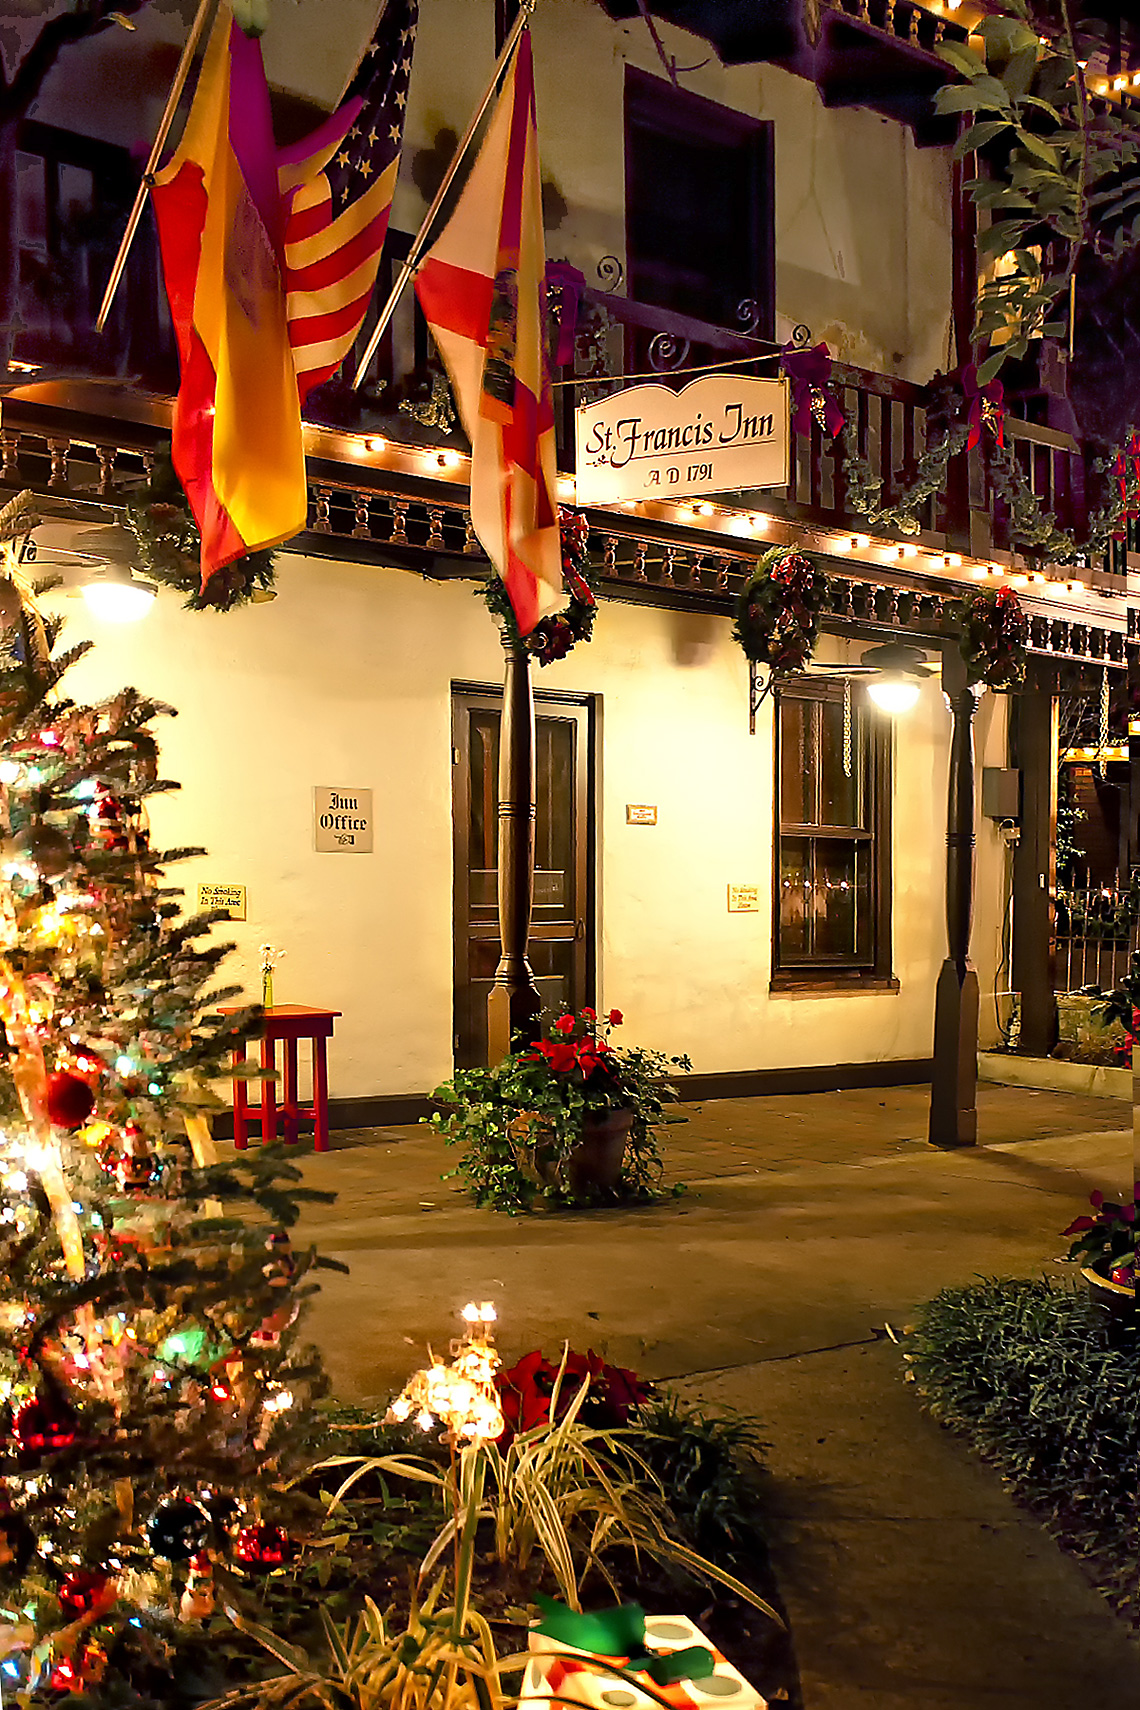 A warm holiday welcome at St. Francis Inn